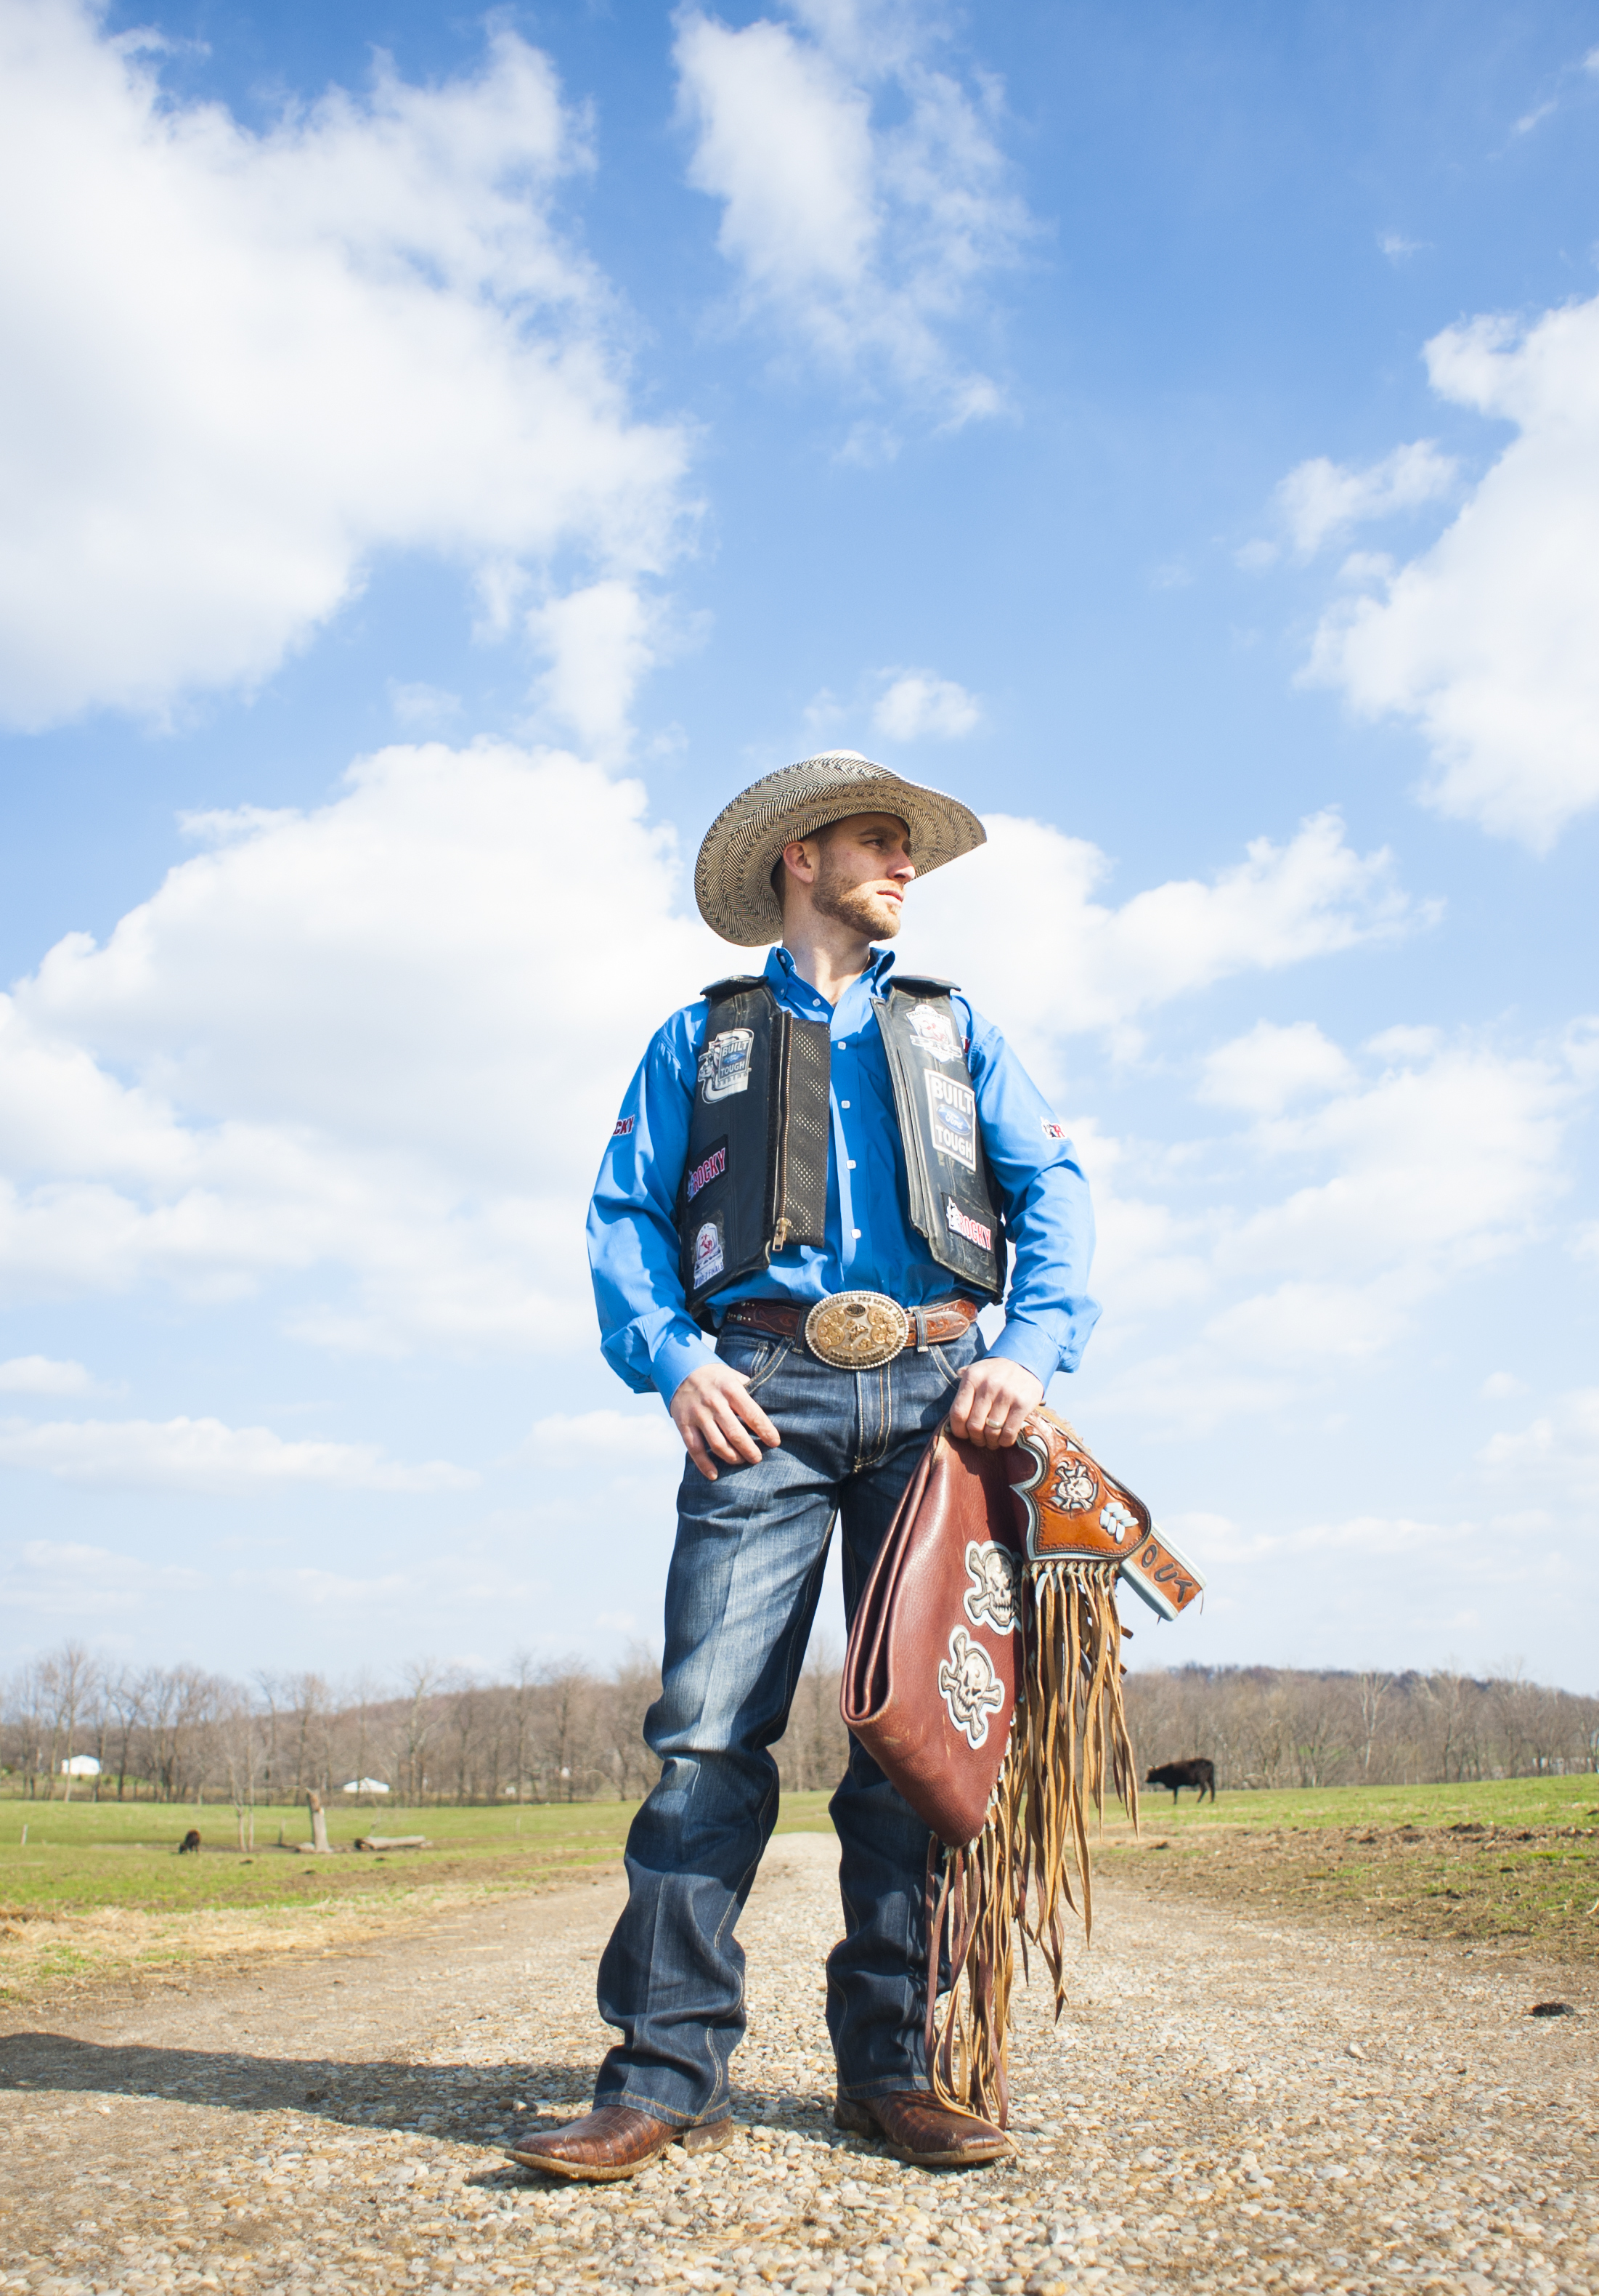 Shane Rickly of Stoutsville, Ohio poses for a portrait on his family's cattle farm in Amanda, Ohio. Rickly, a professional bull rider, recently was sponsored by Rocky Footwear after modeling boots for the company. Shane has lost a thumb and sustained various other injuries while riding, which he began at the age of 4.